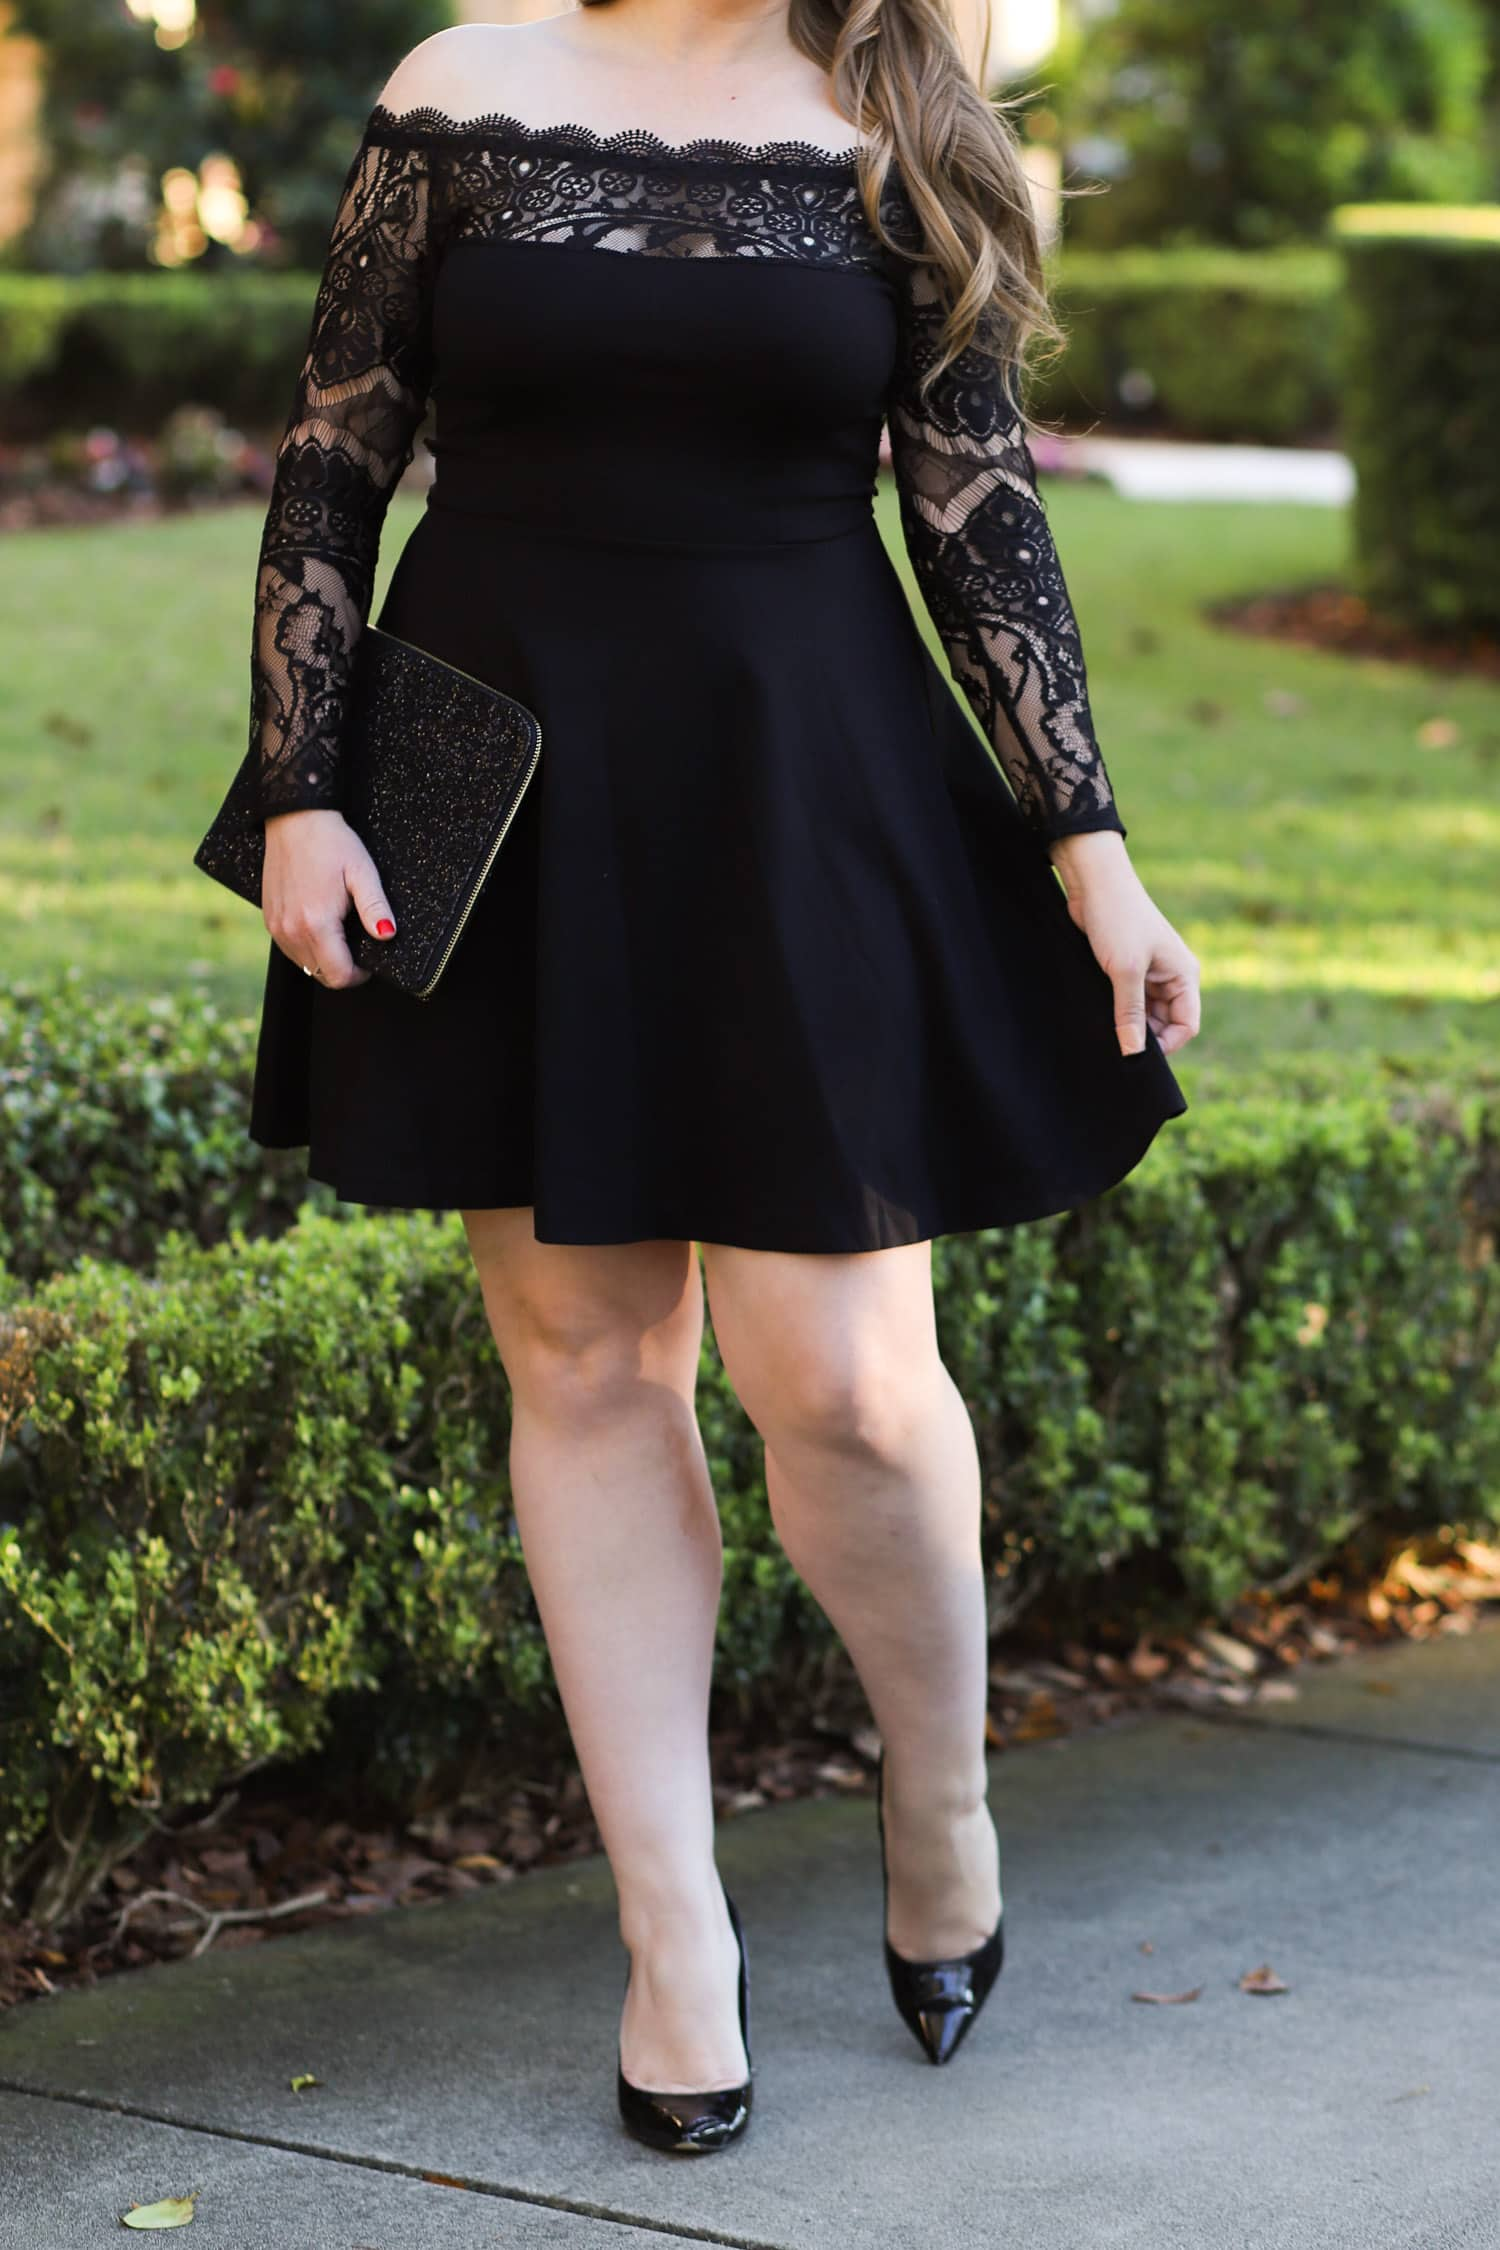 Beauty blogger | holiday glamour outfit black dress | Ashley Brooke Nicholas | Holiday outfit ideas | holiday outfits | black lace dress| holiday hairstyles